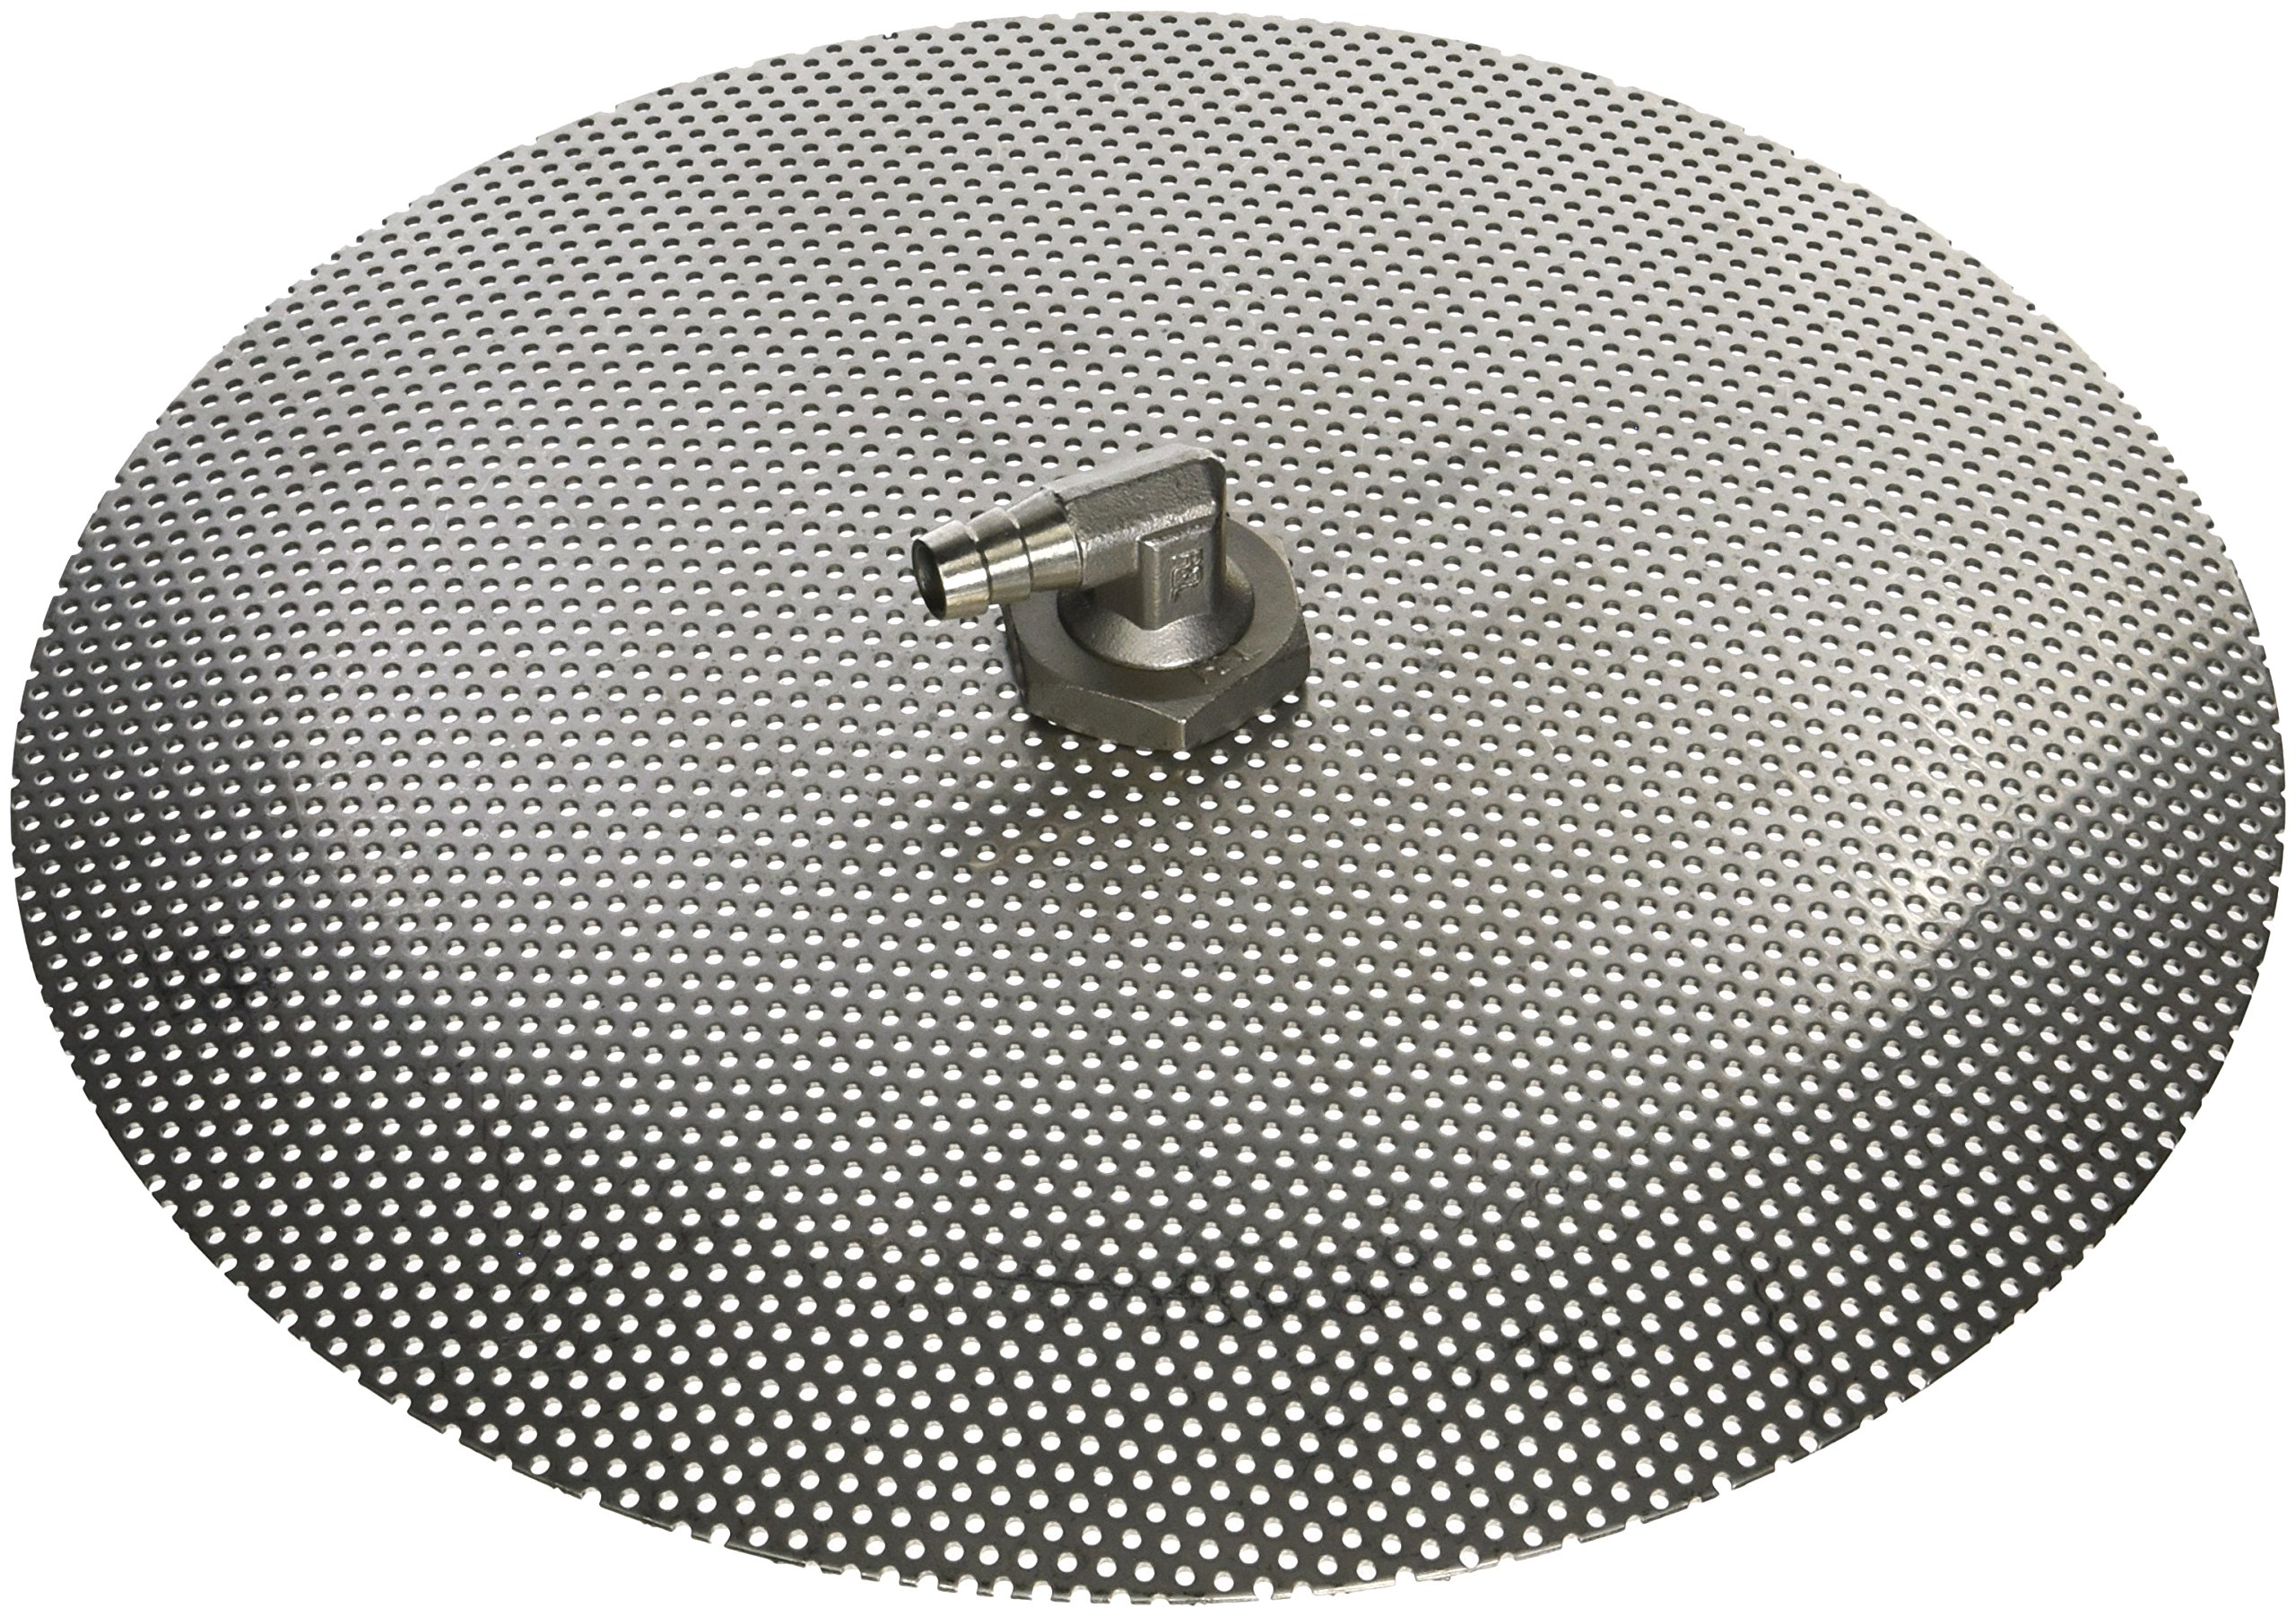 Stainless Steel Domed False Bottom - Select a Size (12'', 10'' or 9'') (10'')